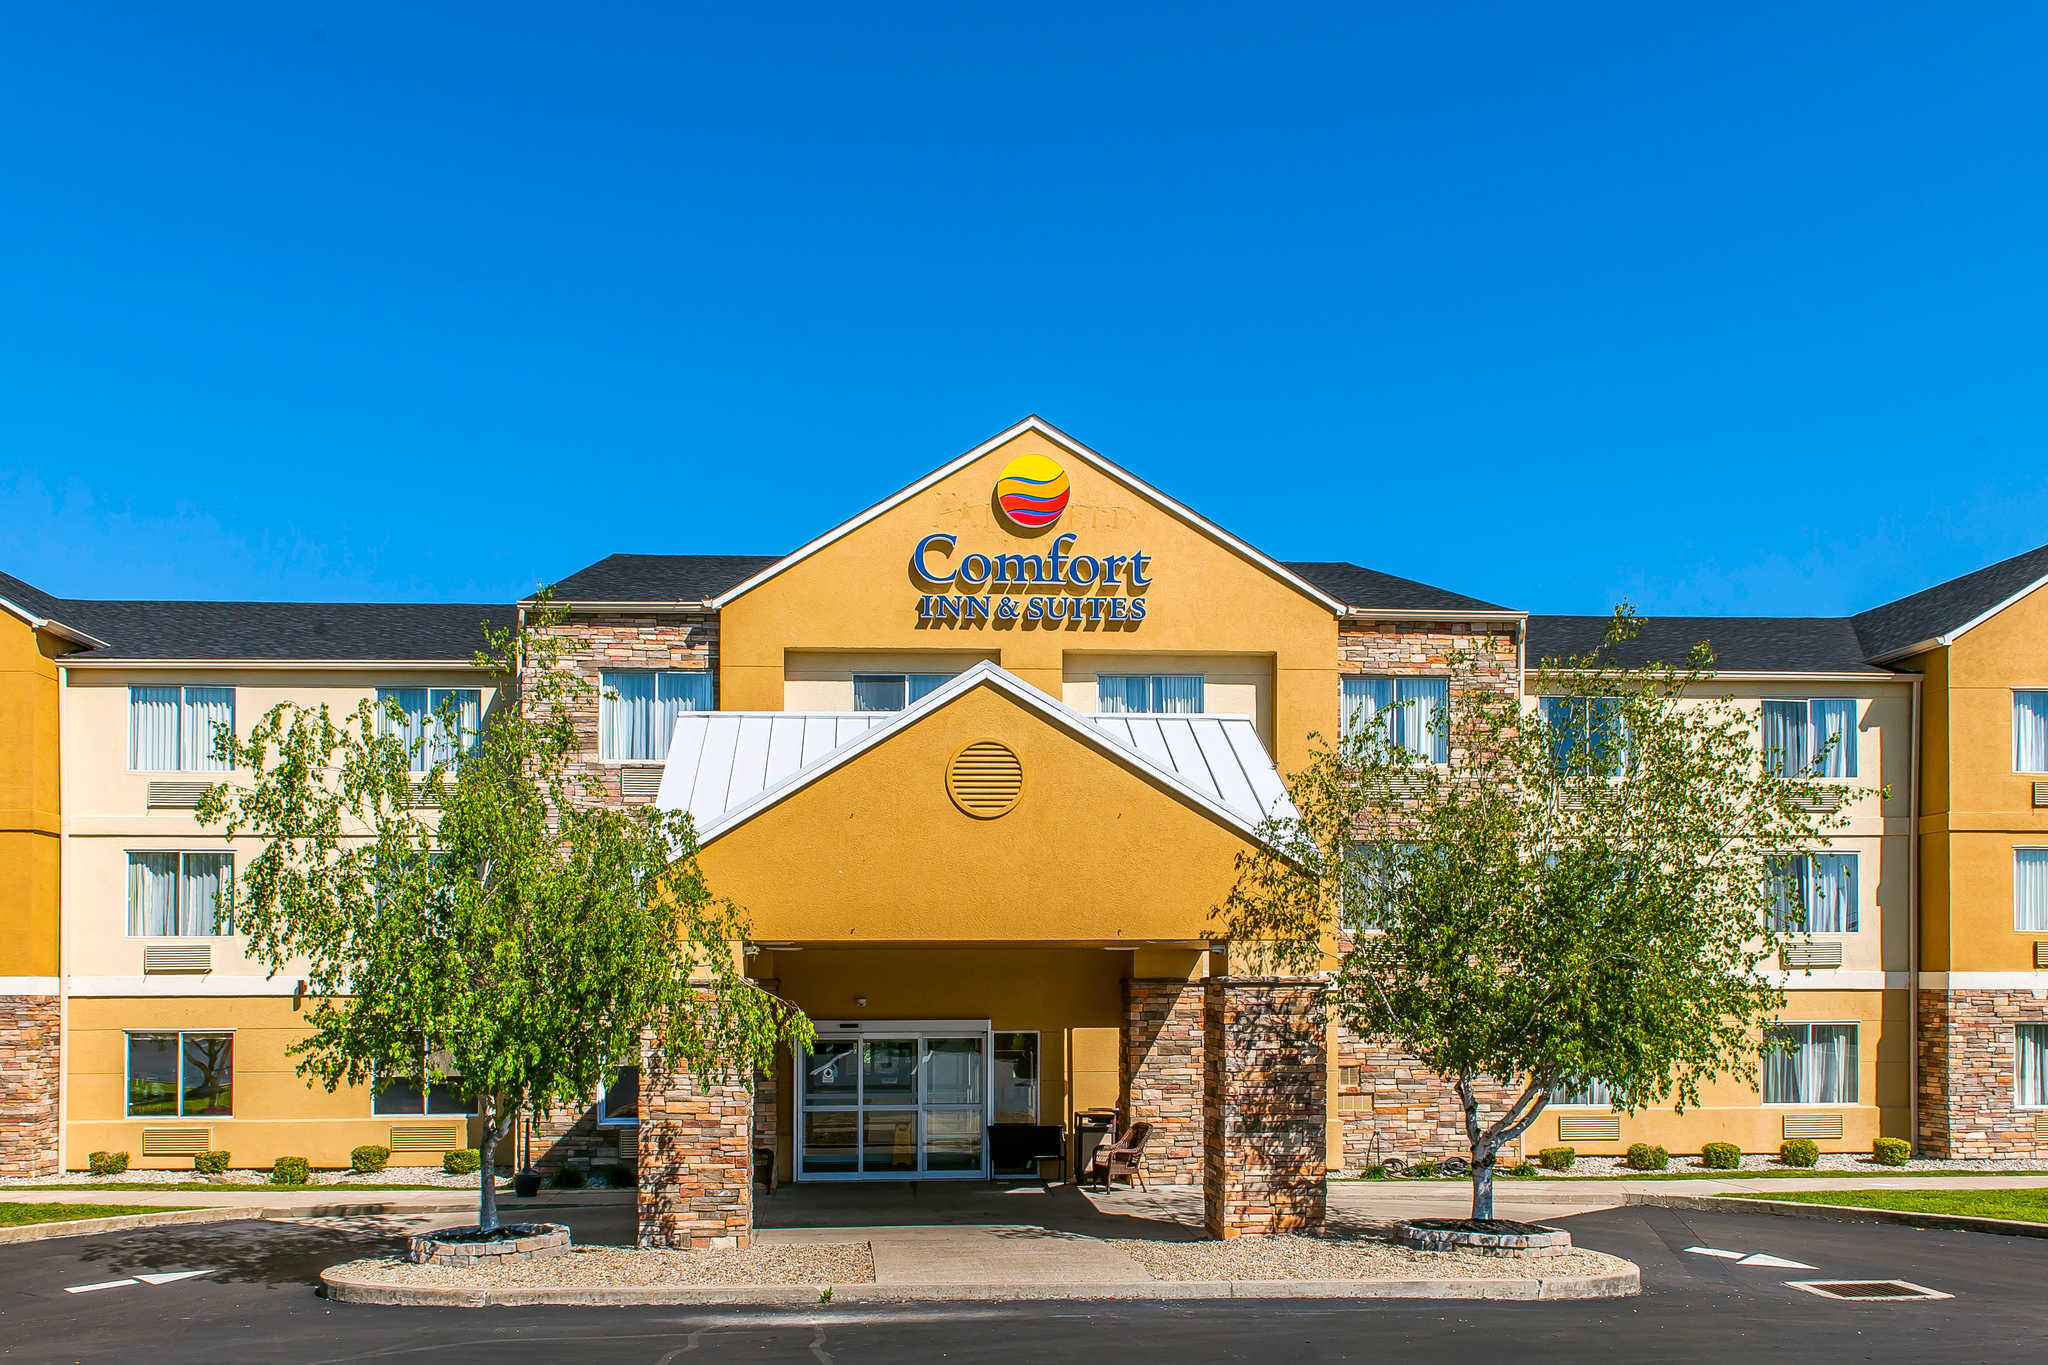 Comfort inn suites coupons mount sterling ky near me for Hotels 8 near me